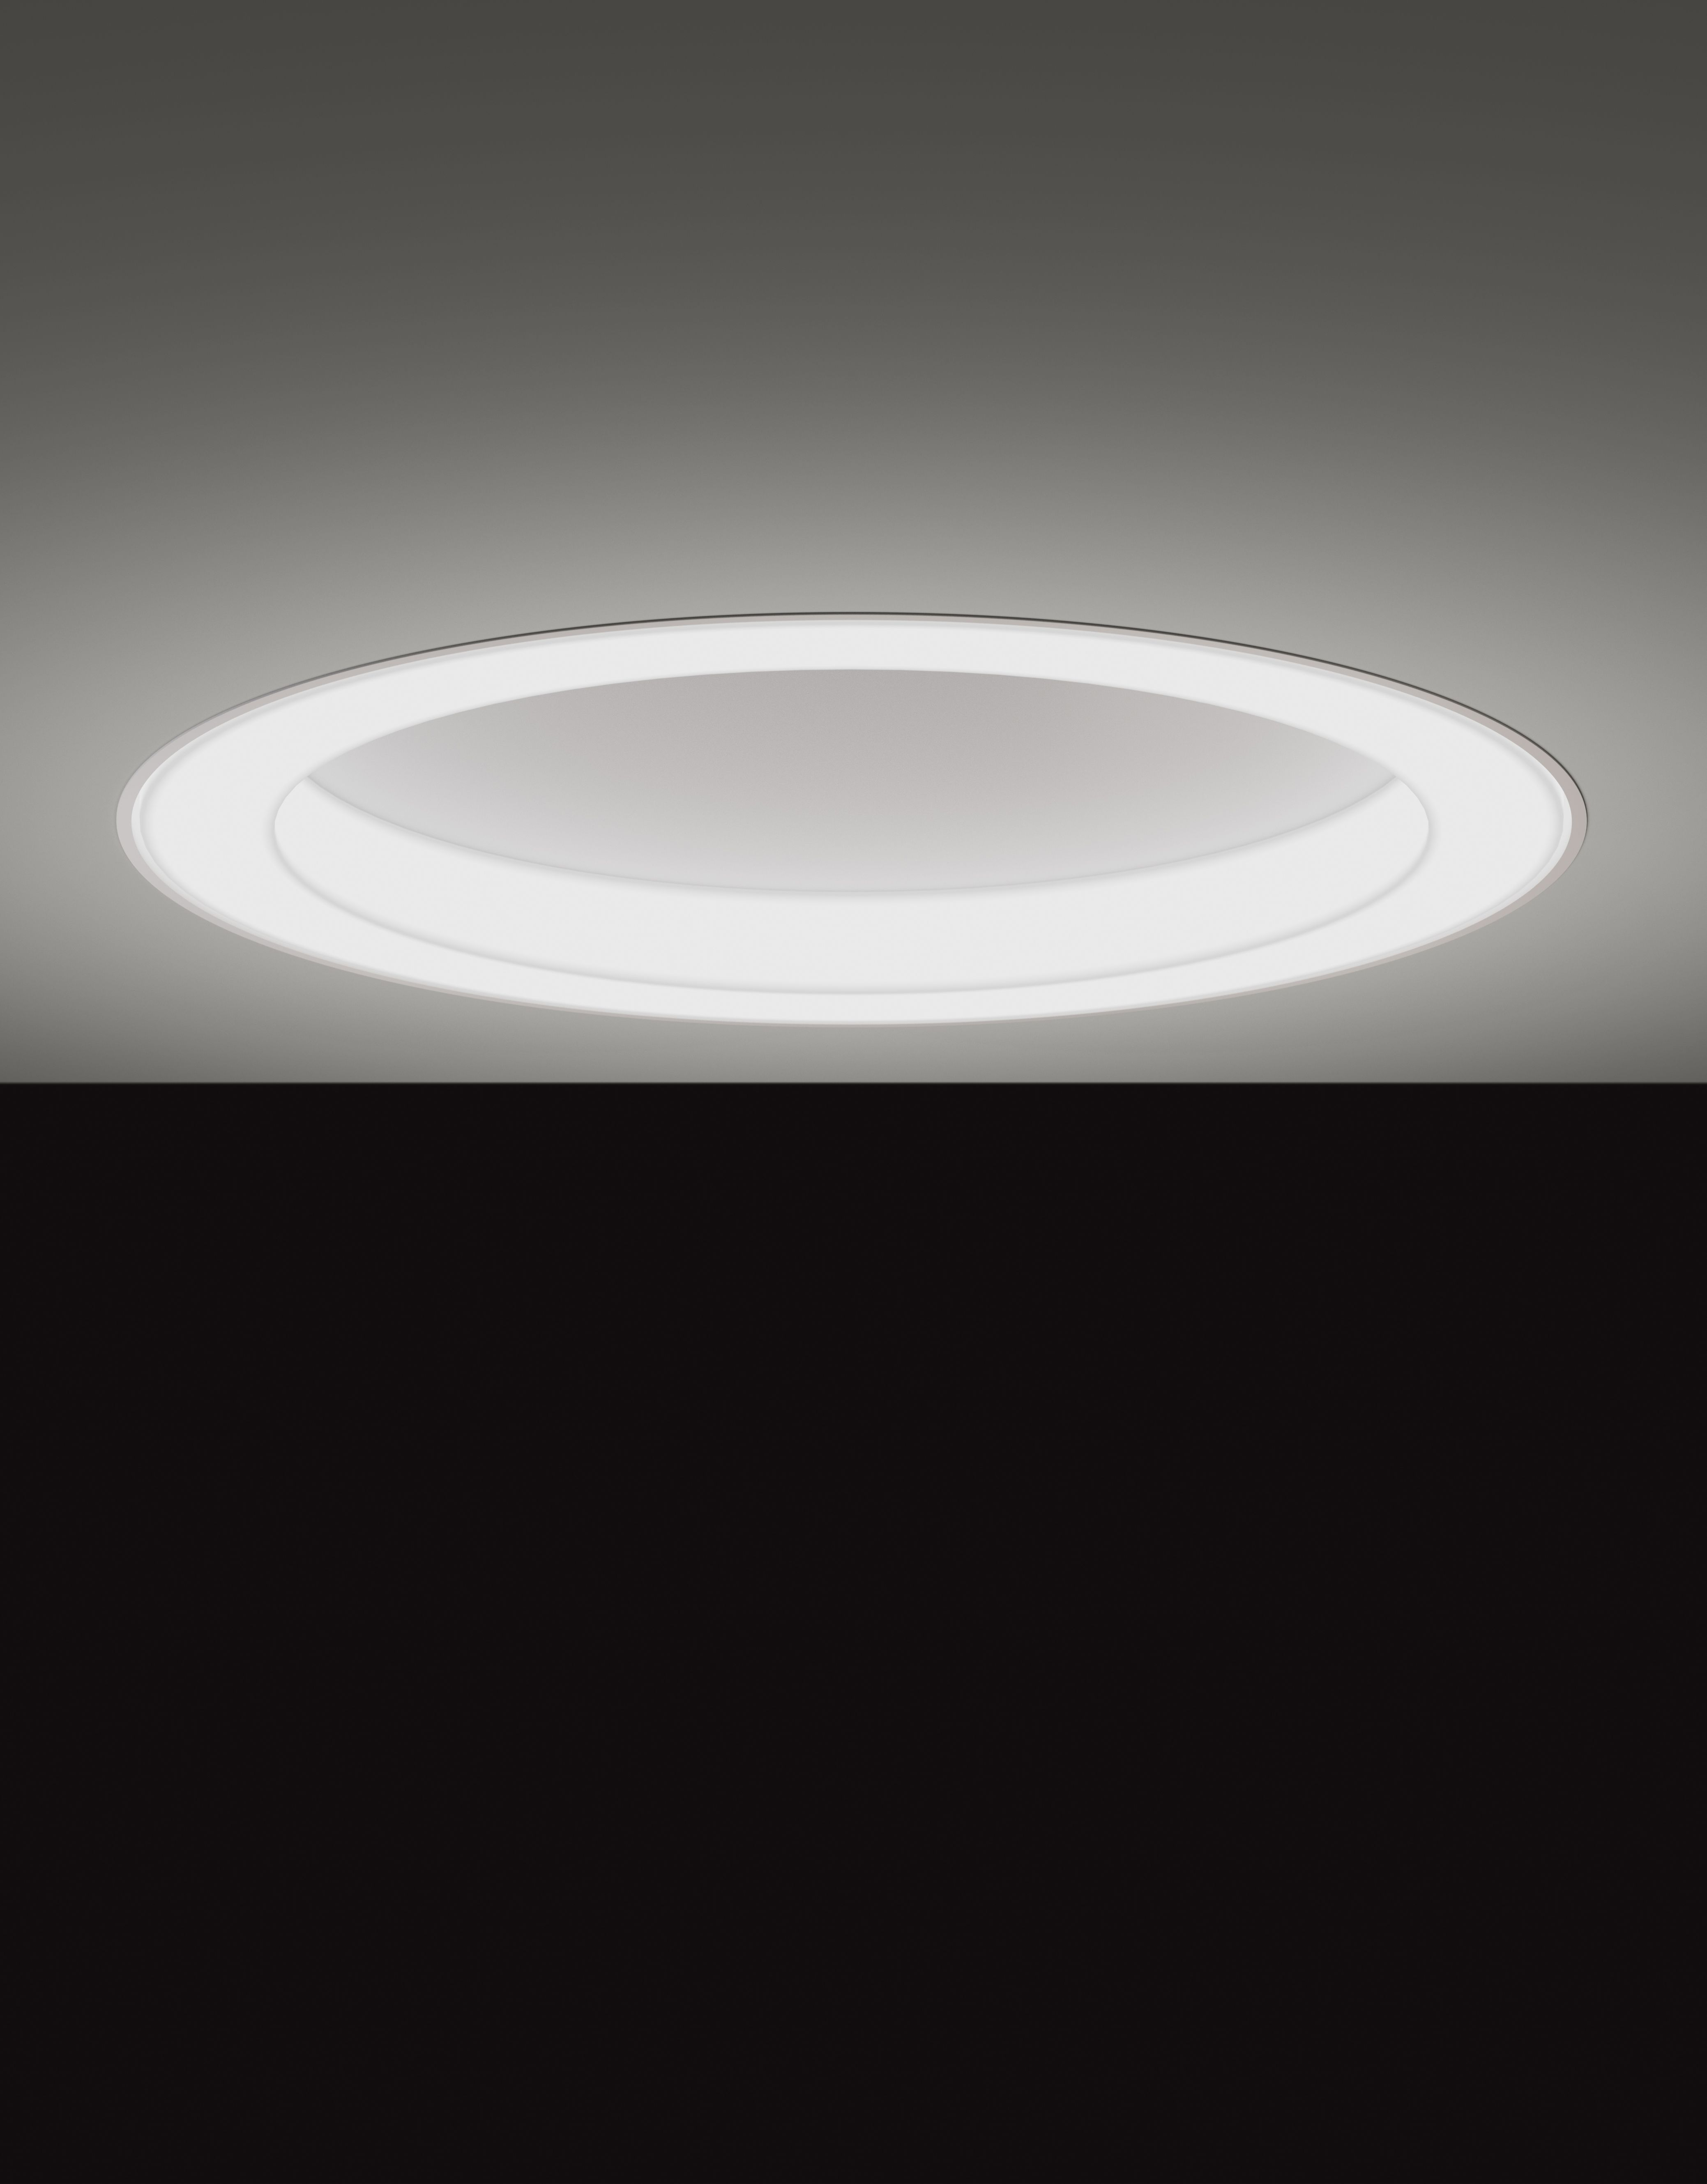 Glowring Recessed Ceiling Ocl Architectural Lighting